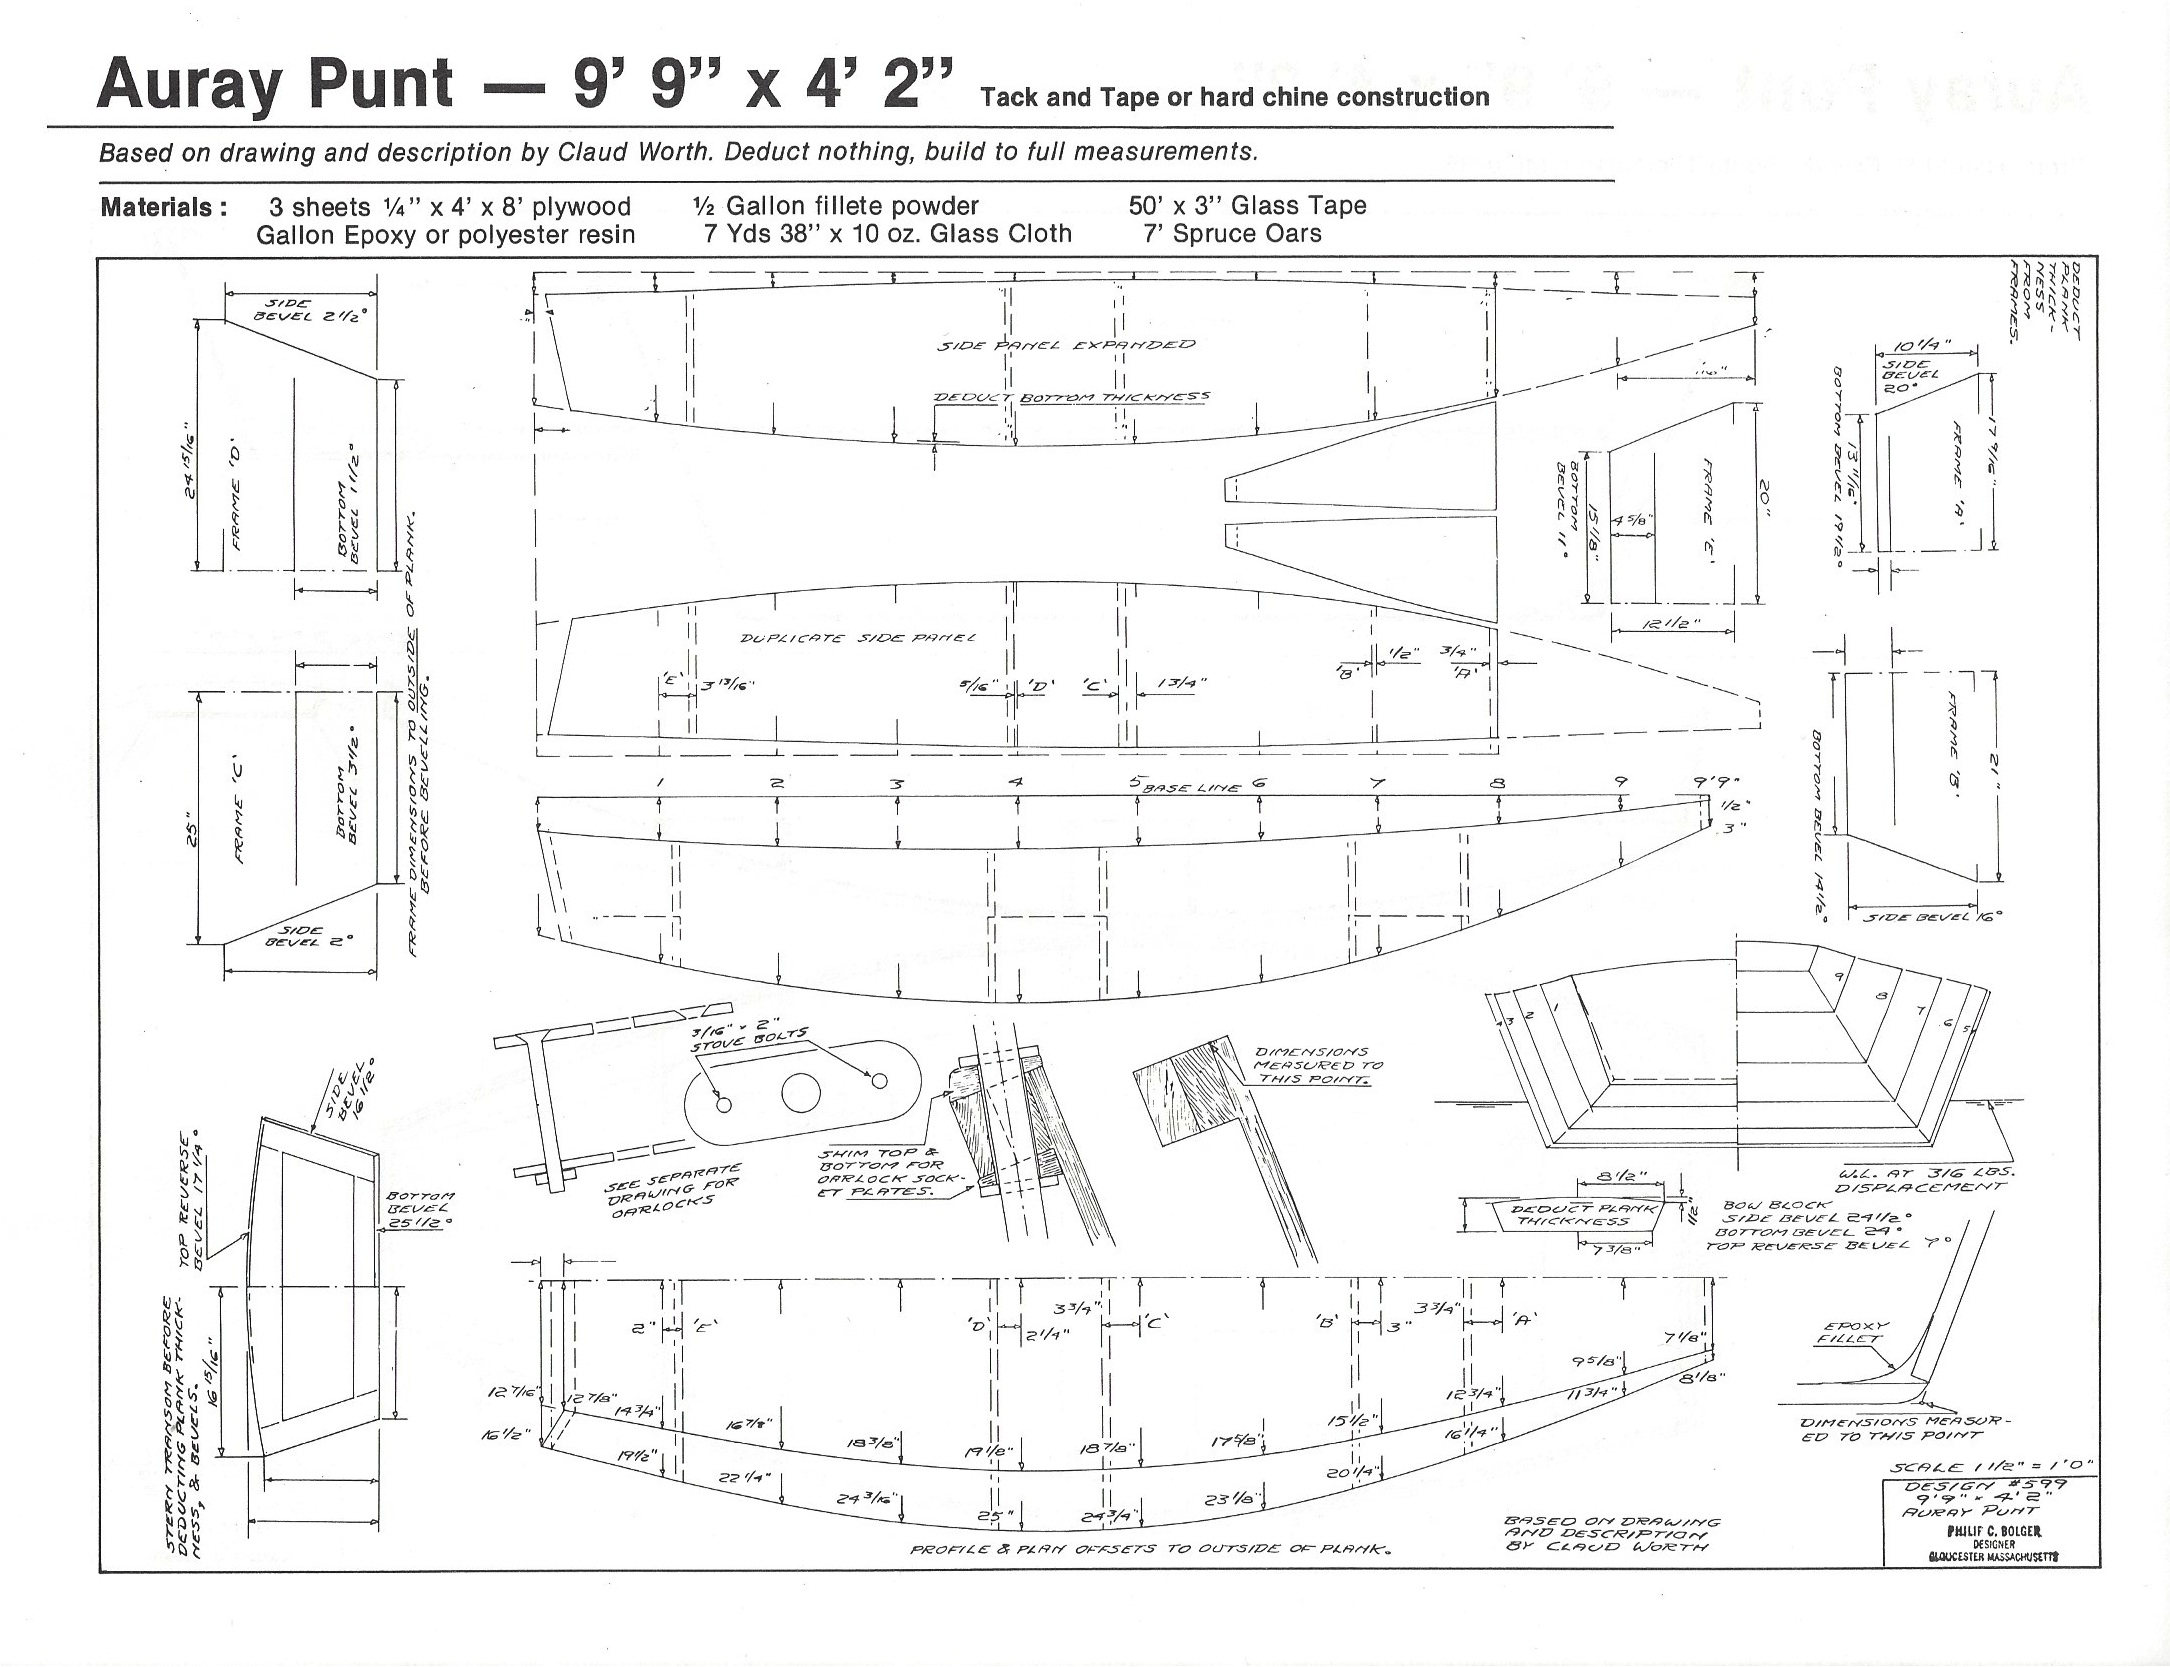 "Auray Punt - 9'-9"" x 4'-2"" - H.H. Payson and Company"